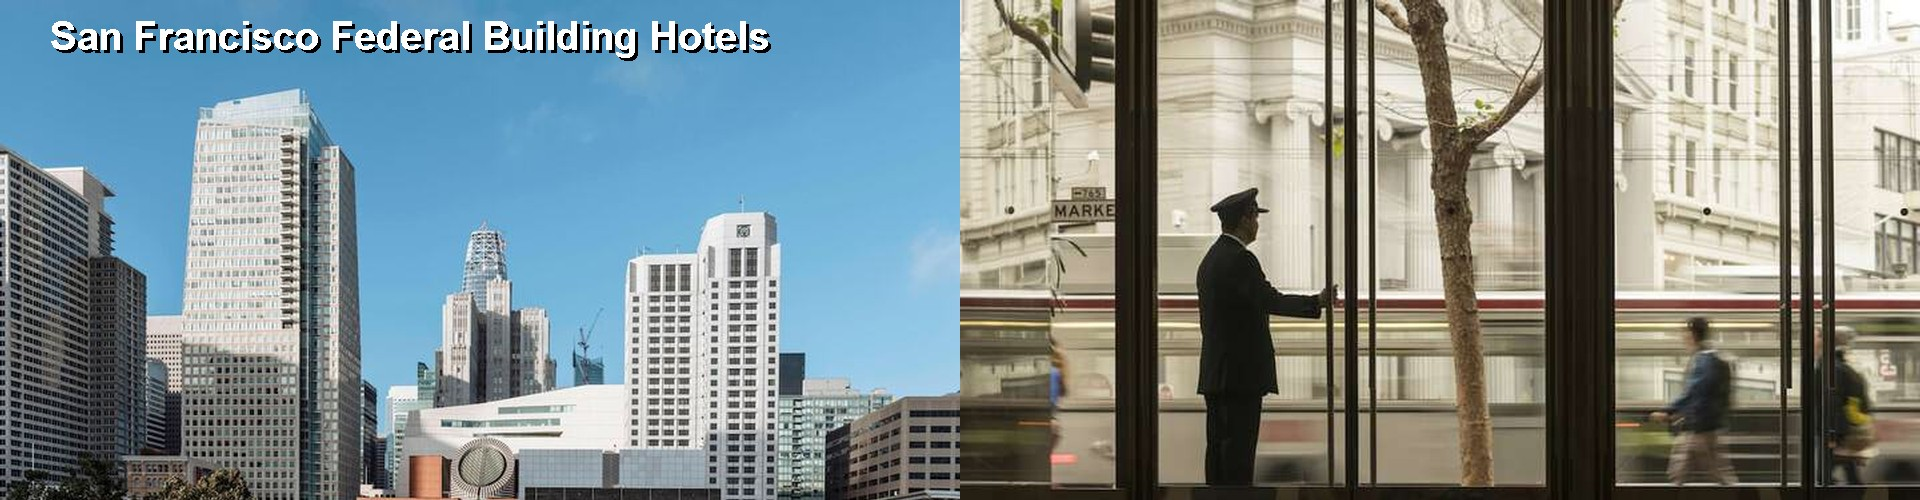 3 Best Hotels near San Francisco Federal Building